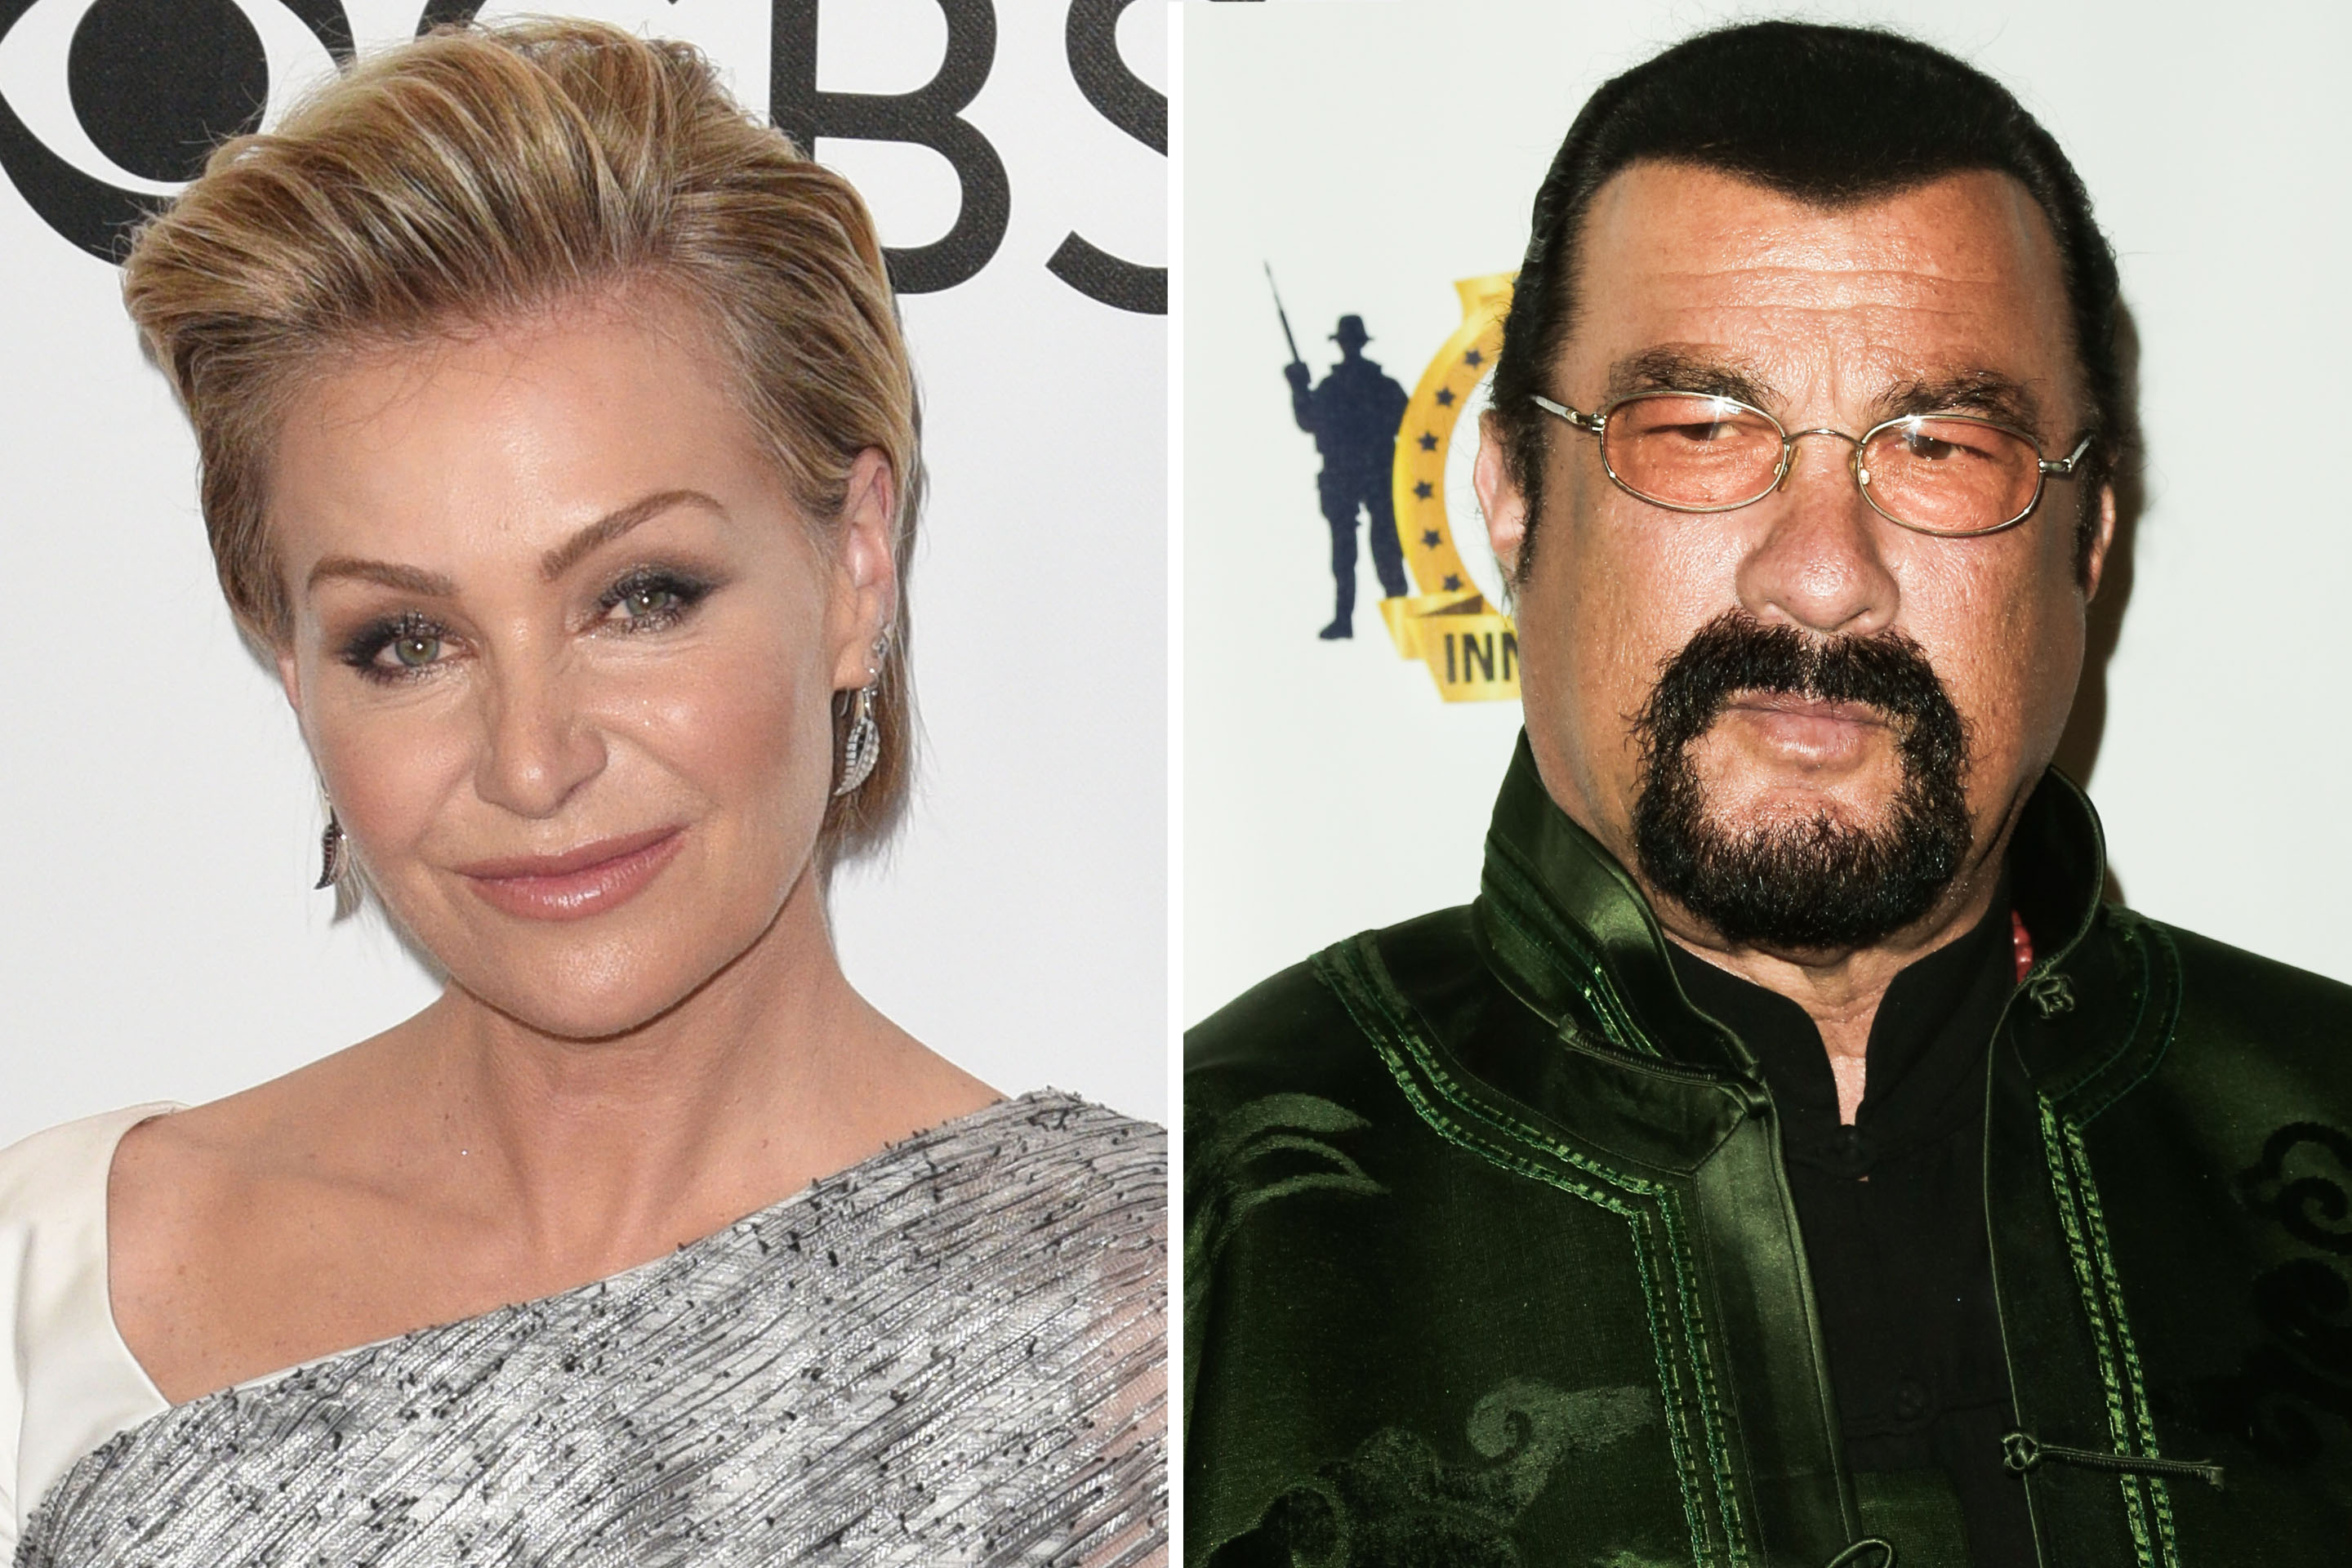 Actress Portia de Rossi claims Steven Seagal unzipped his pants in front of her during an audition.